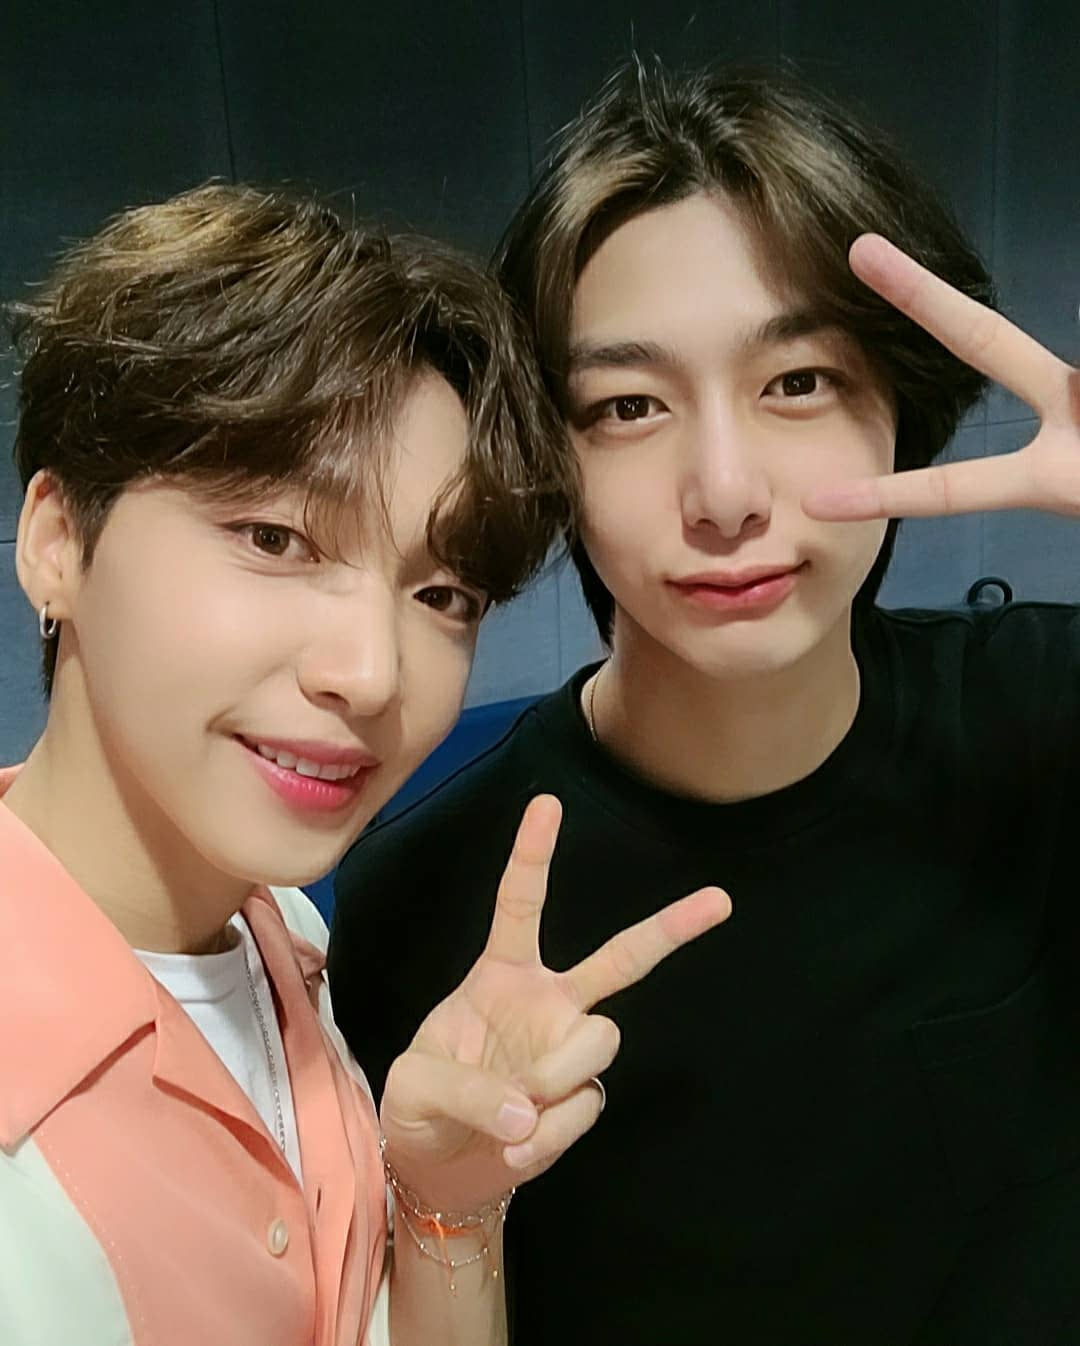 Jeong Sewoon Hyungwon